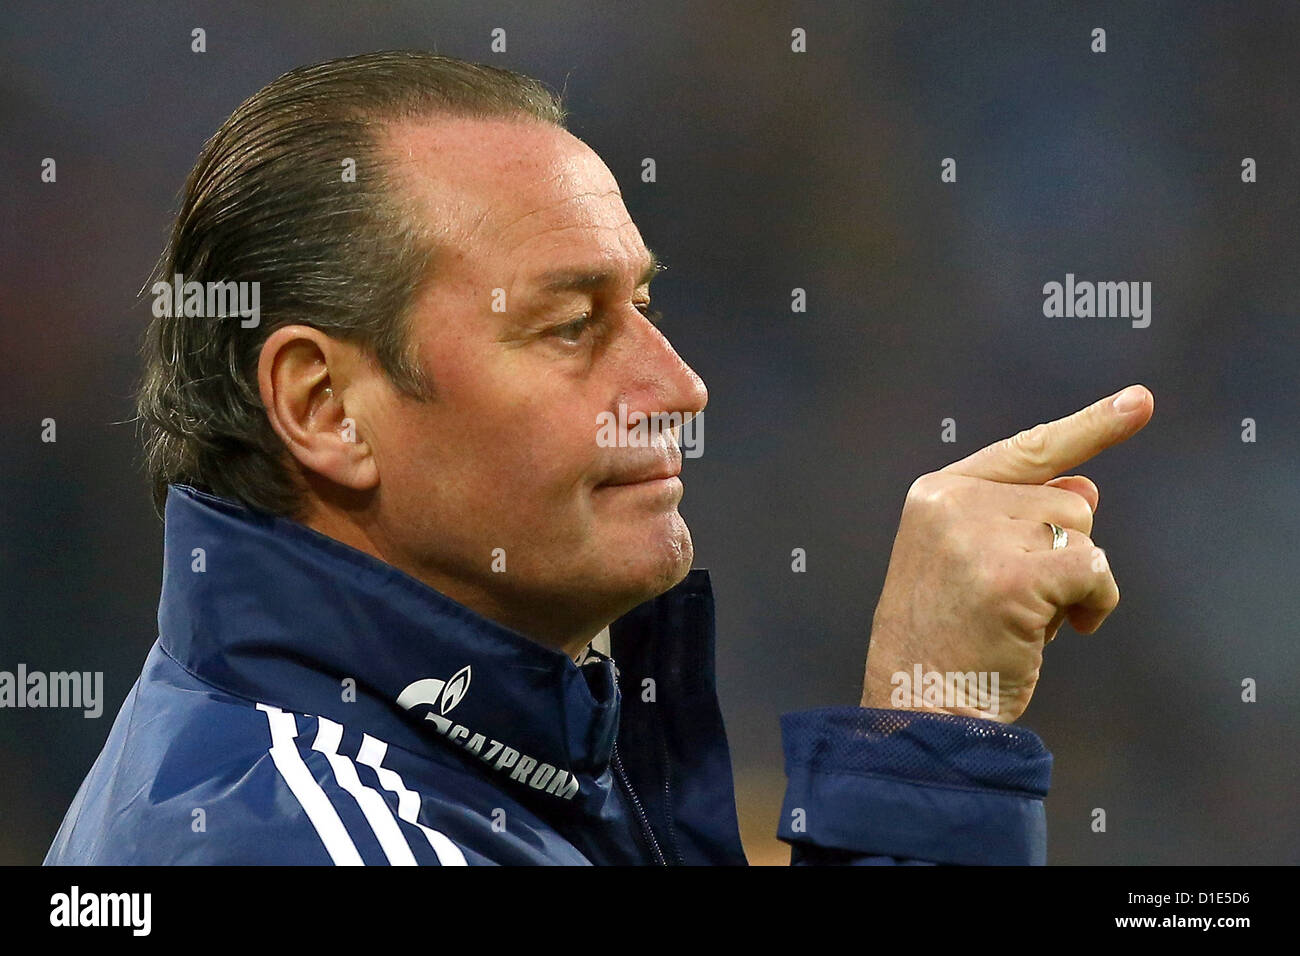 FC Schalke's coach Huub Stevens gestures during the match FC Schalke 04 - SC Freiburg in the VELTINS-Arena in - Stock Image